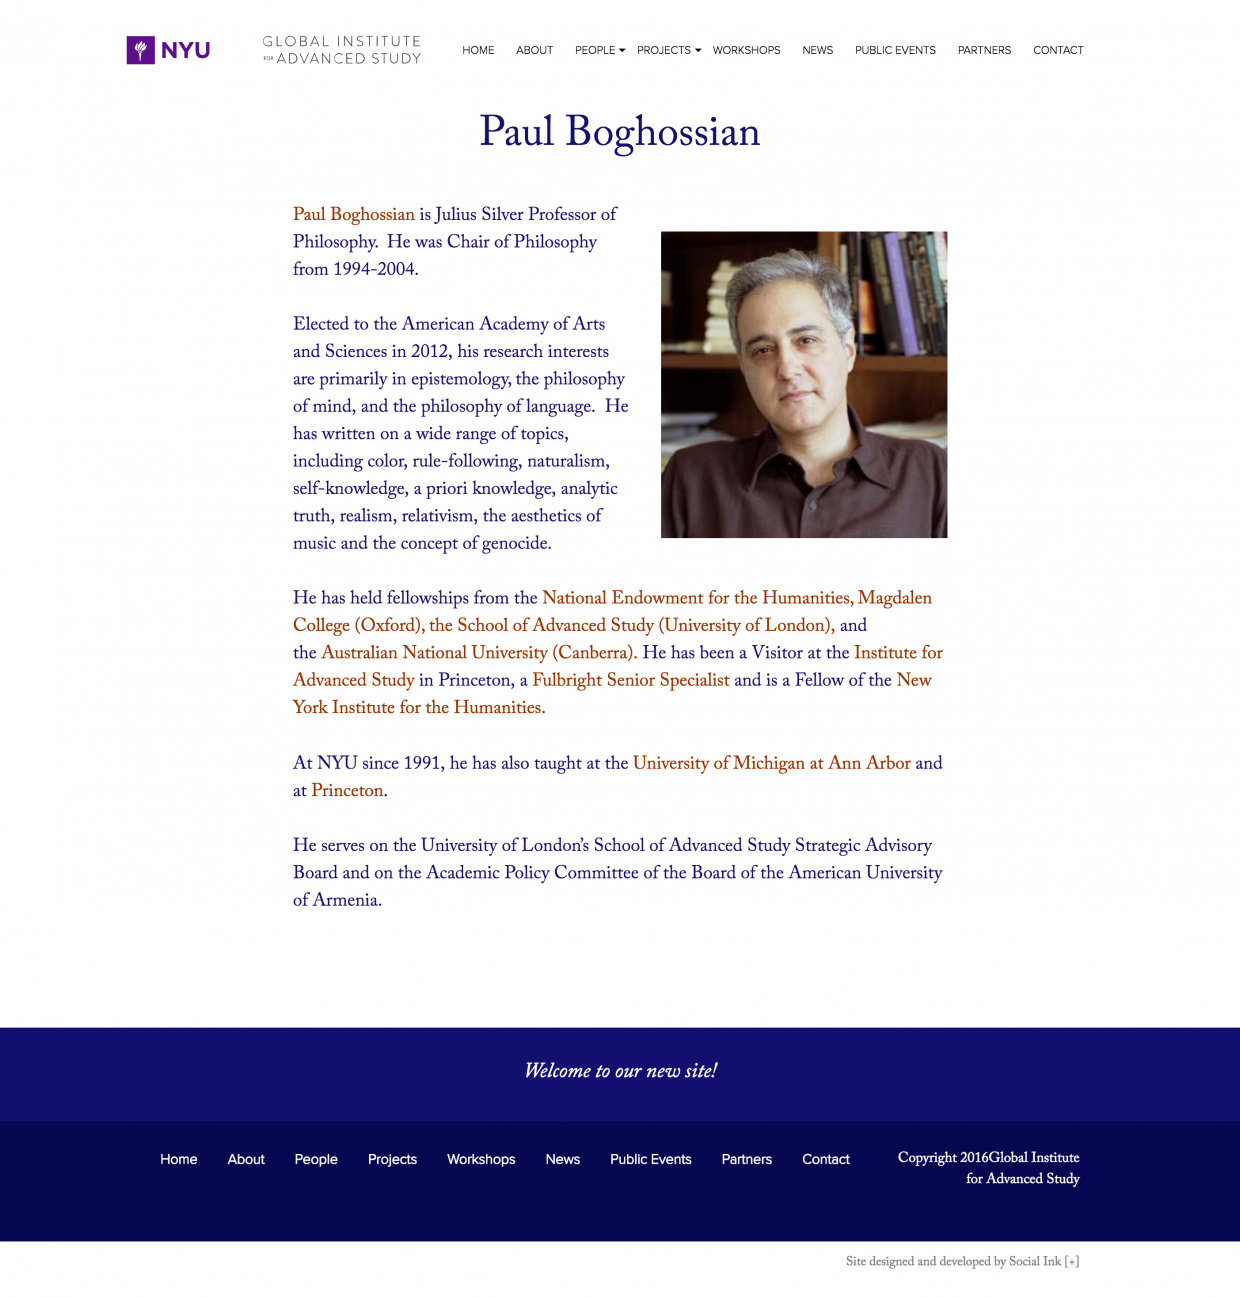 Global Institute for Advanced Study NYU: Featured Staff Page